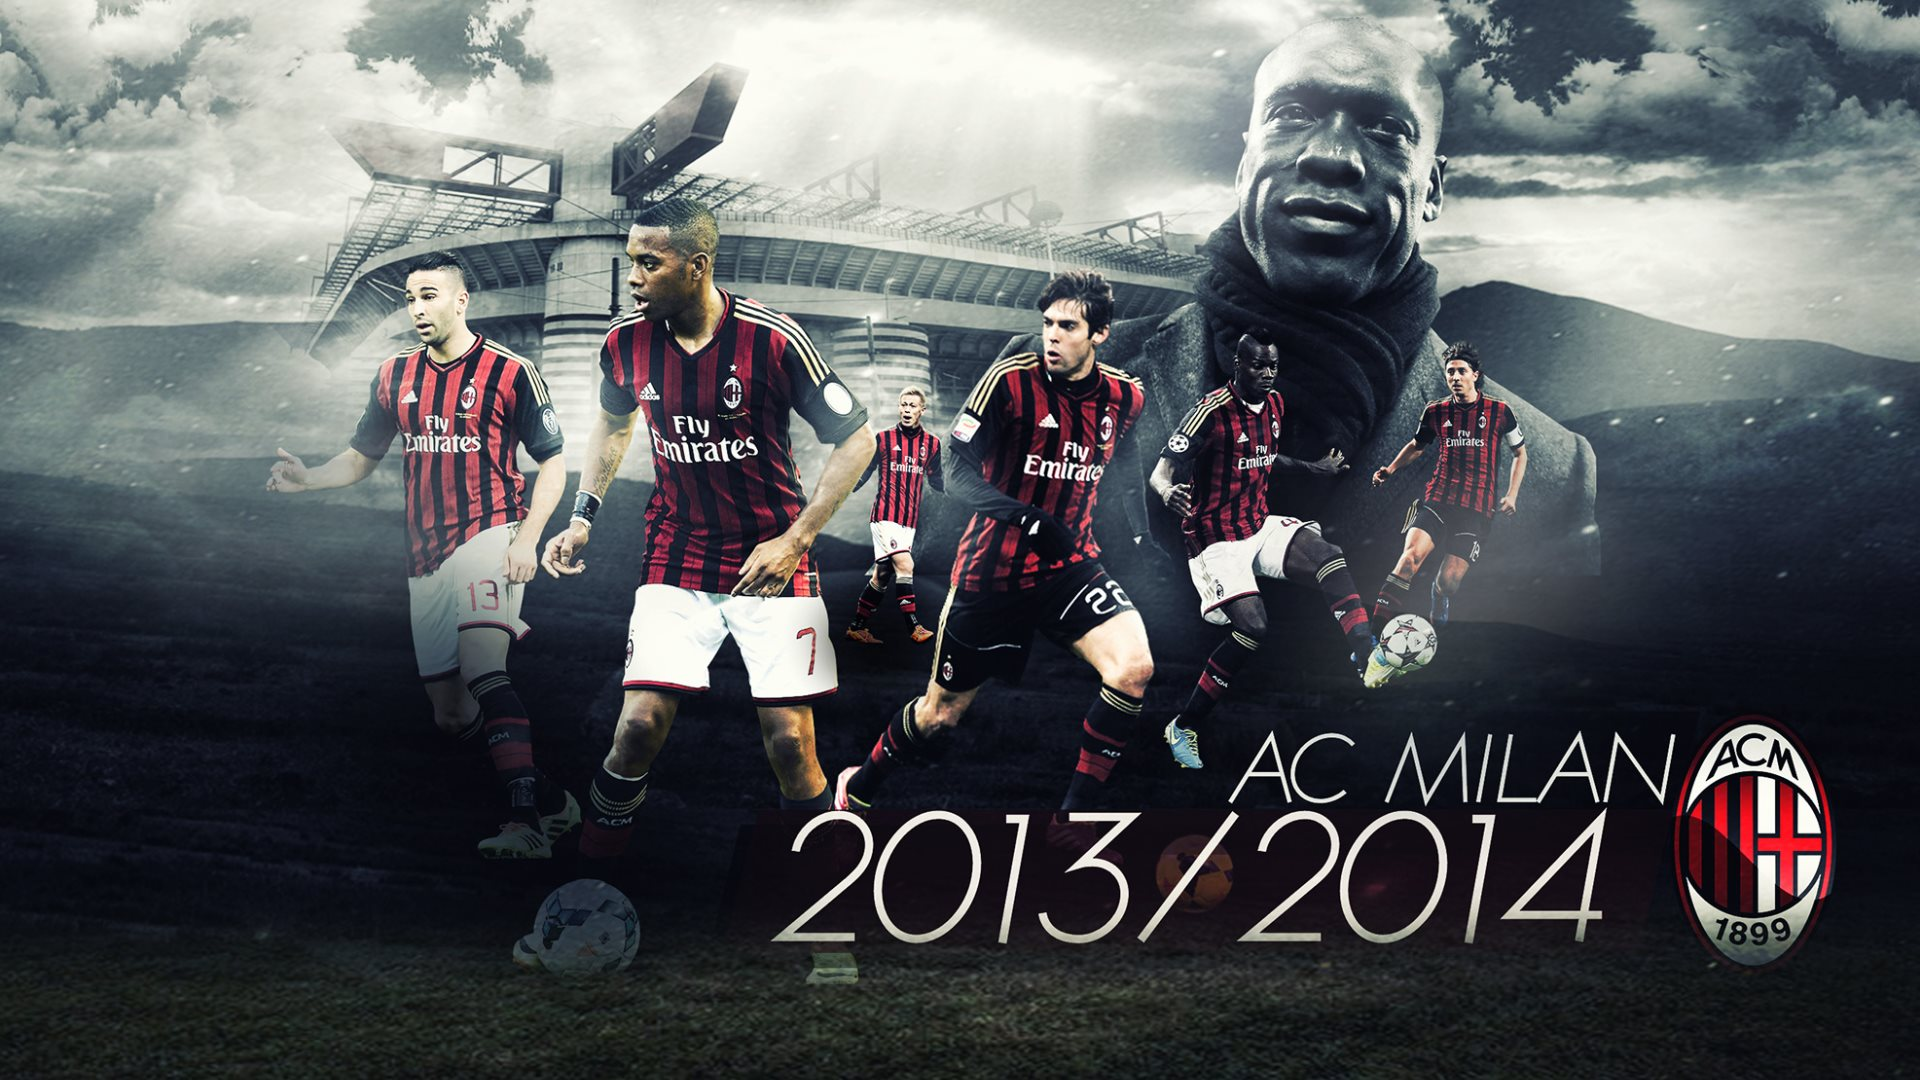 Hd wallpaper ac milan - Wallpaper Ac Milan 2014 High Definition Hd 1920x1080